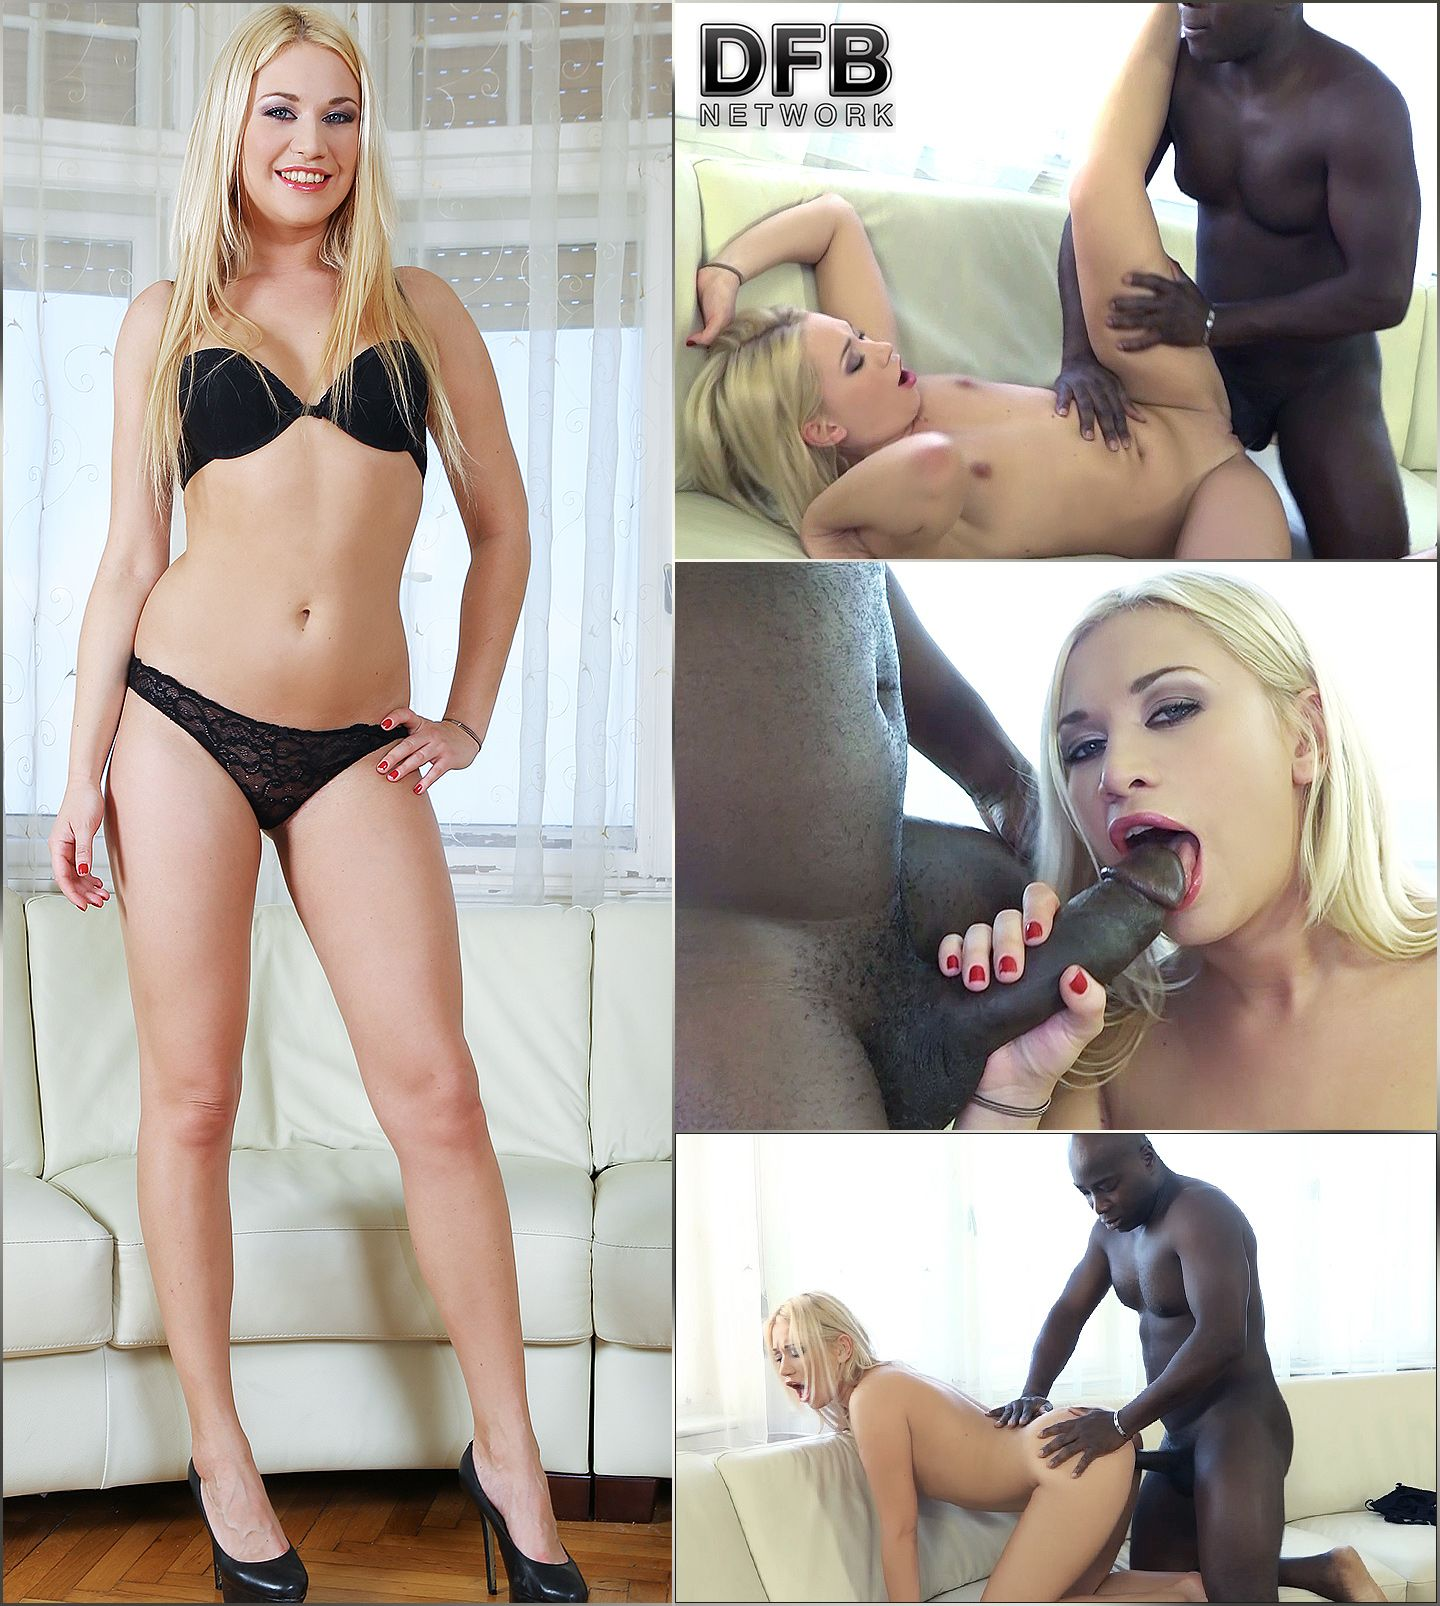 Alex chance gets her pussy filled with bbc 8